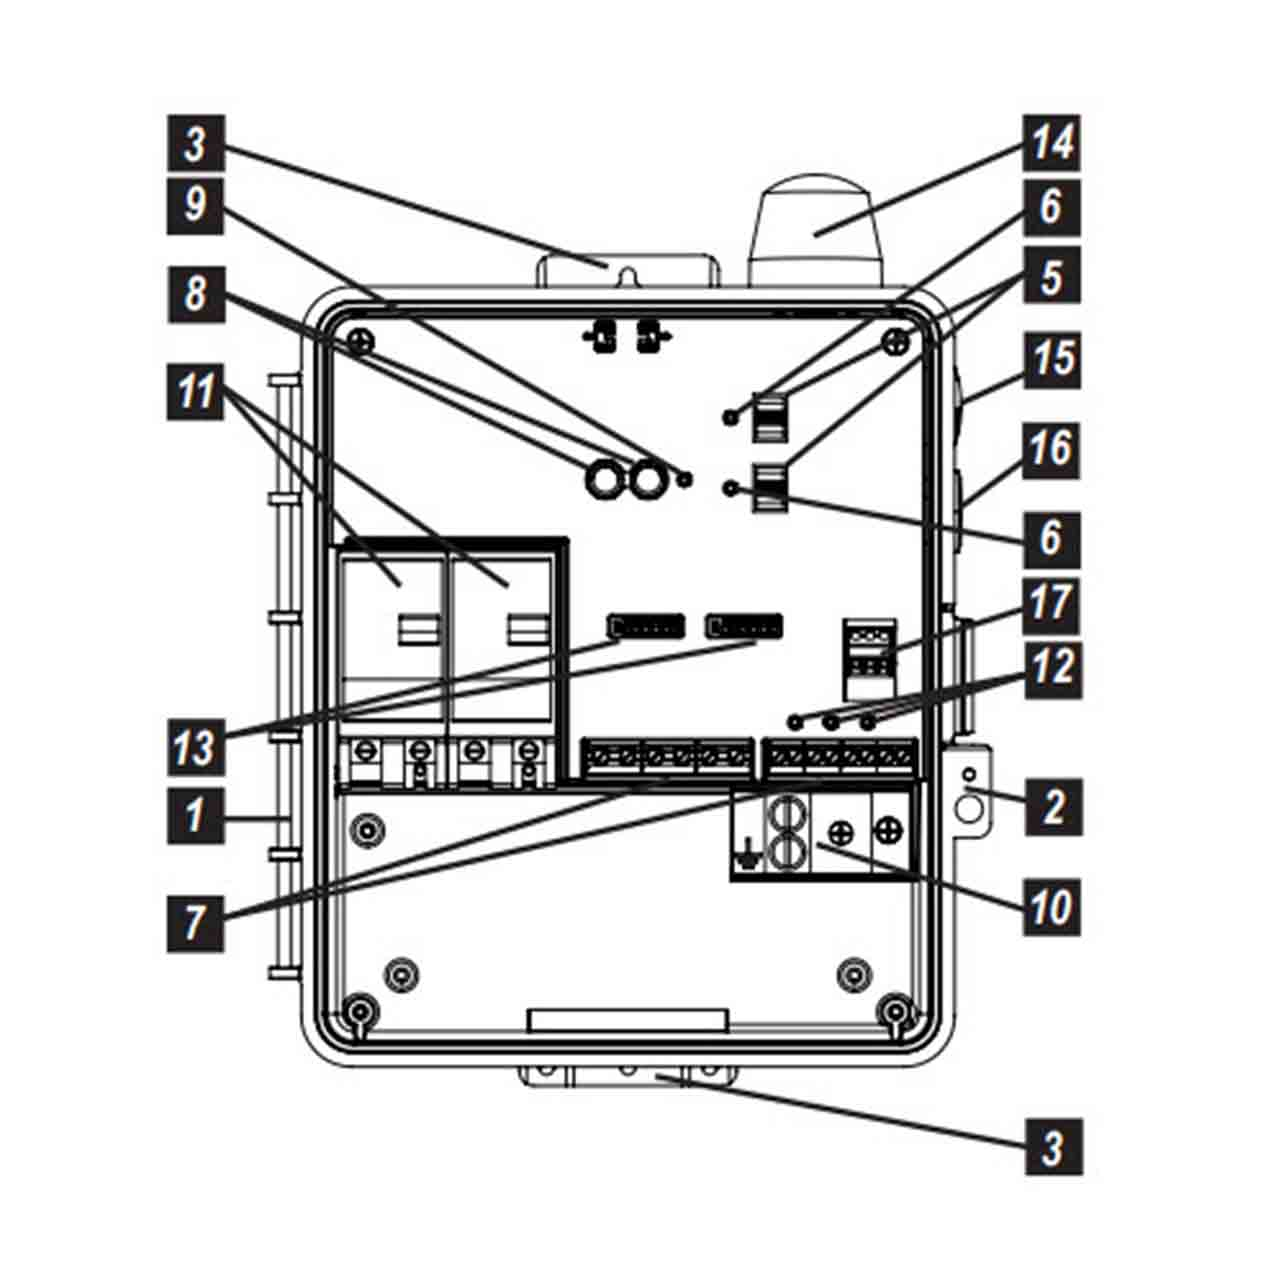 bilge pump switch wiring diagram besides rule bilge pump wiring